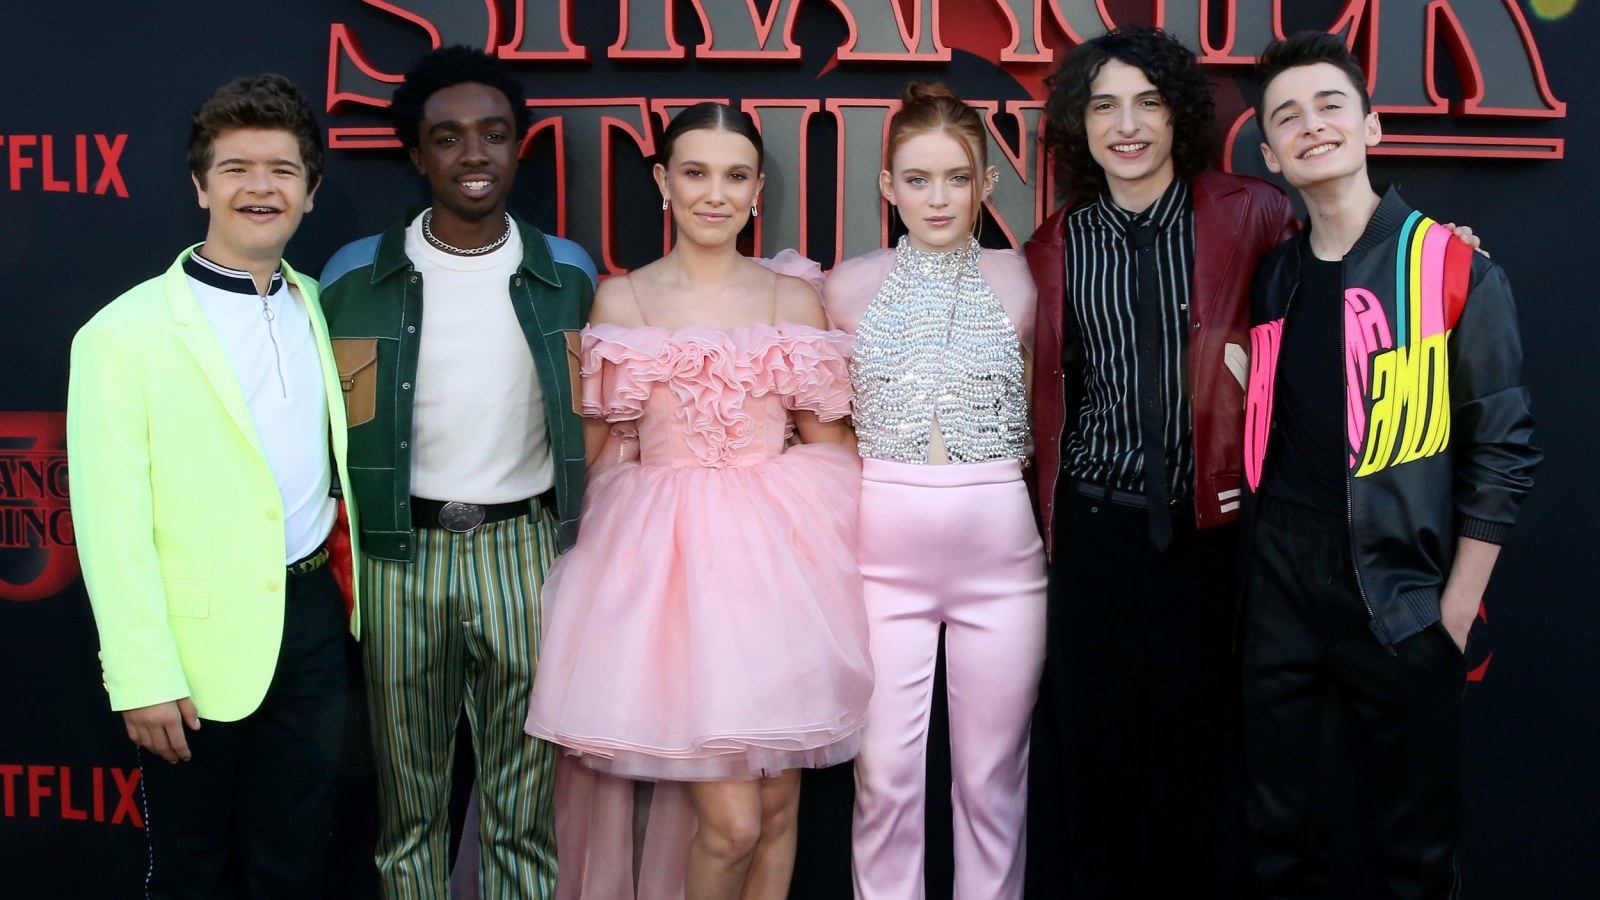 Here's Everything the 'Stranger Things' Cast Is Doing After Season 3